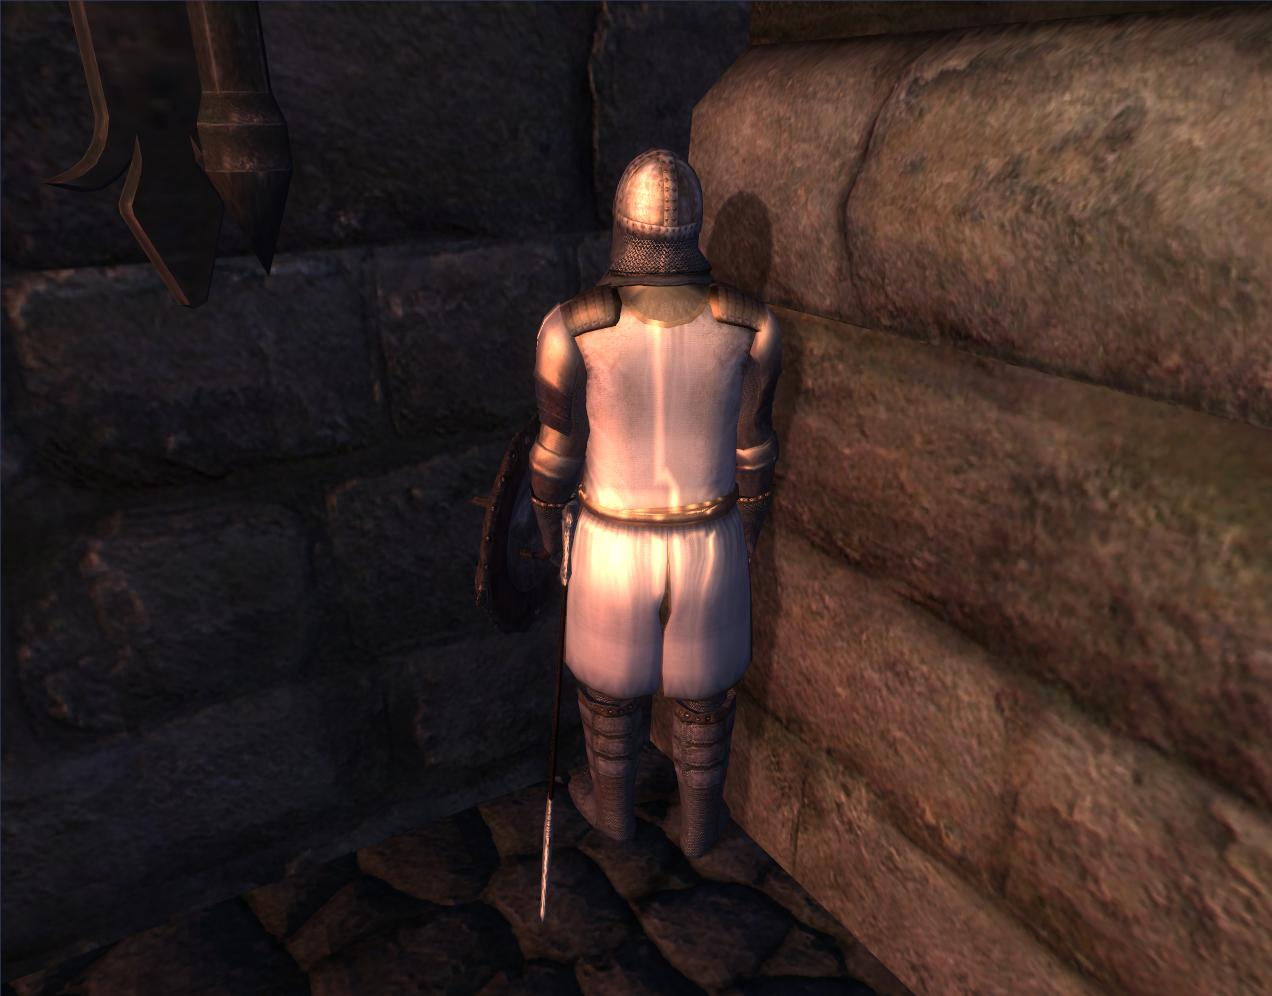 Oblivion guard sex erotic photo